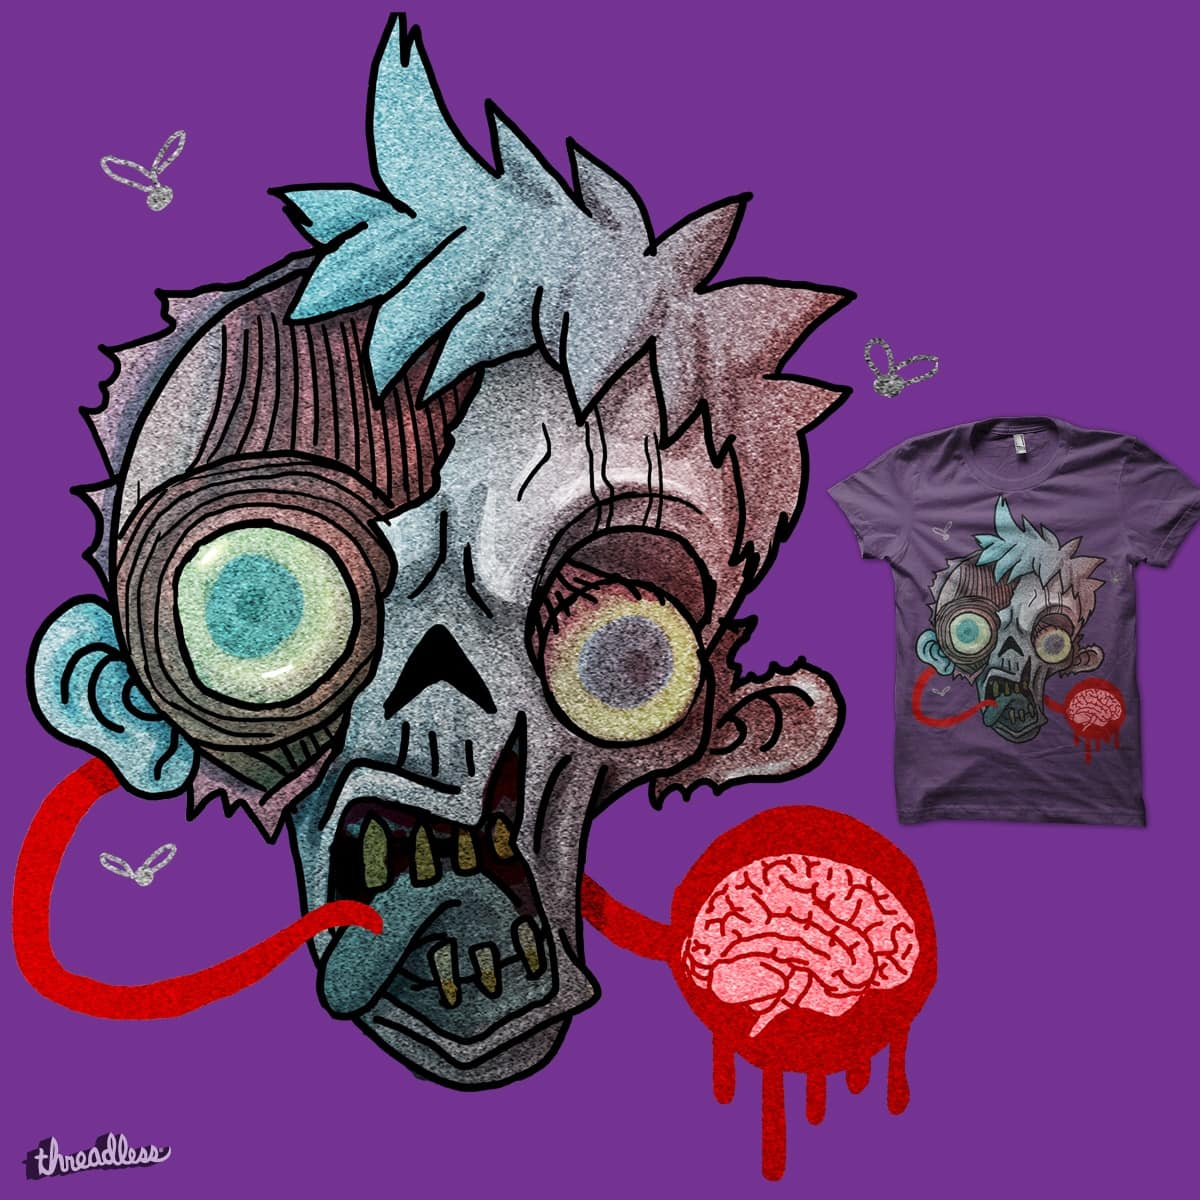 talk of the dead by thestray on Threadless